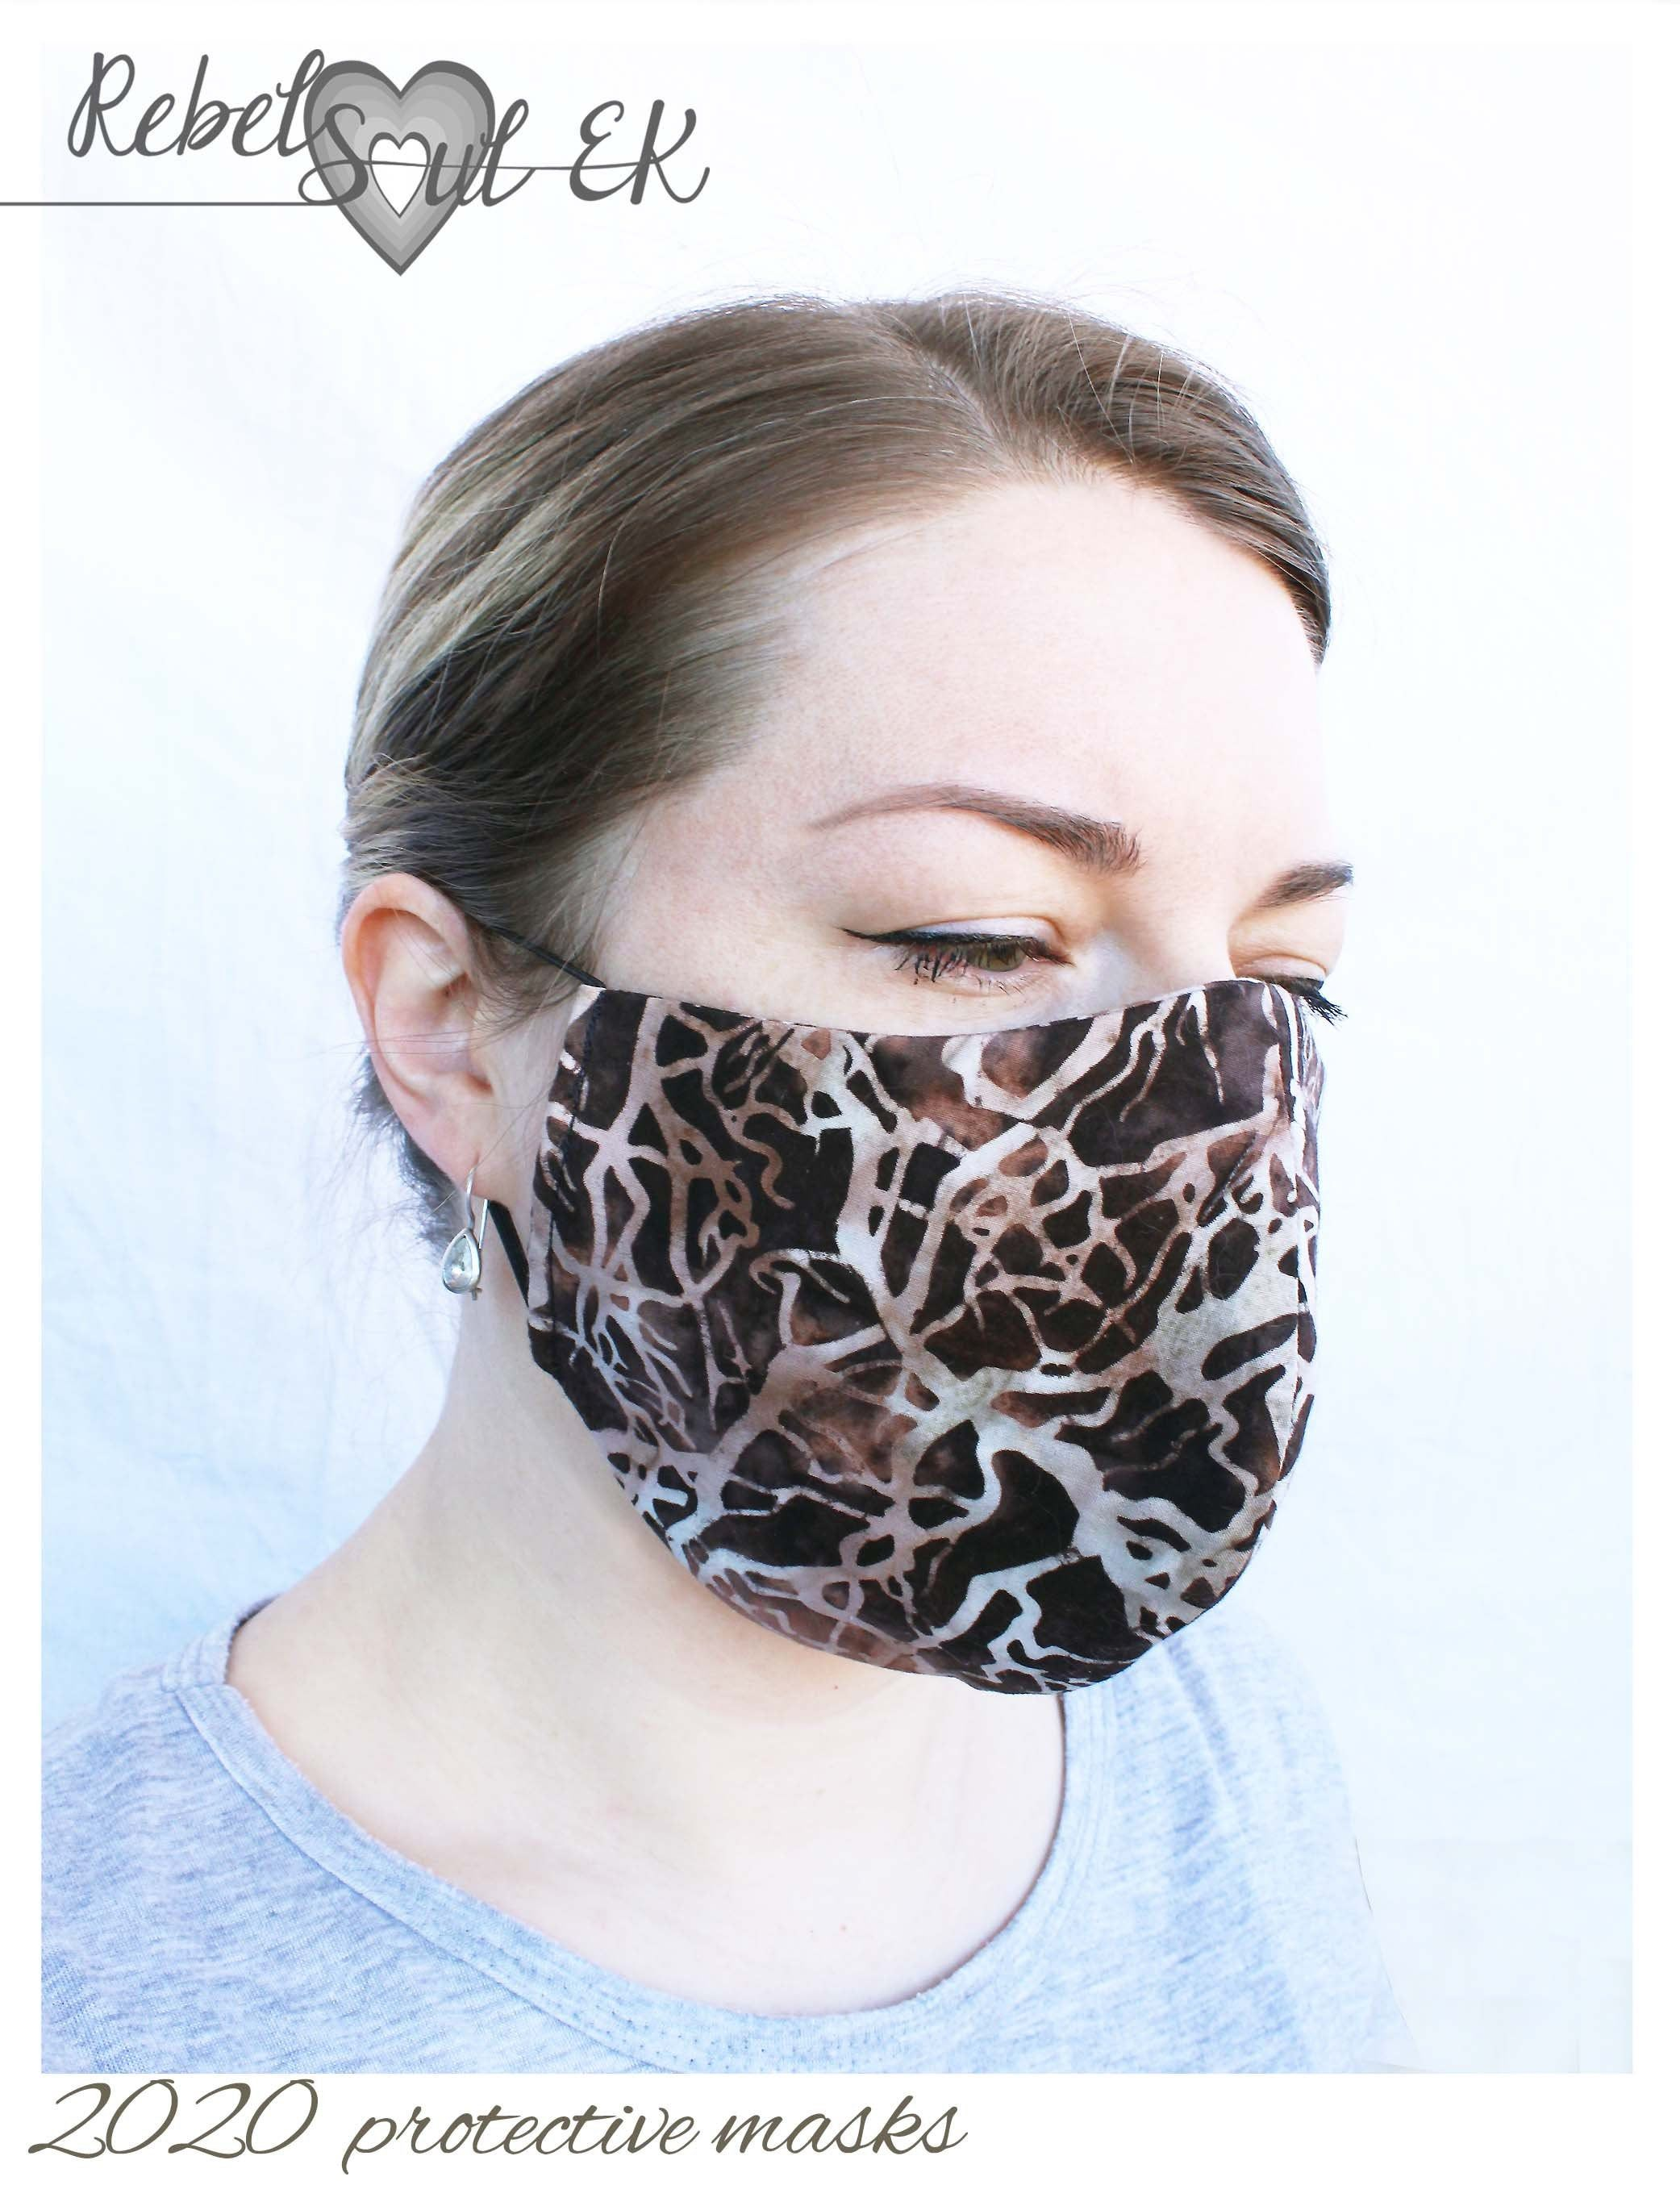 41+ Anime dust mask for sale ideas in 2021